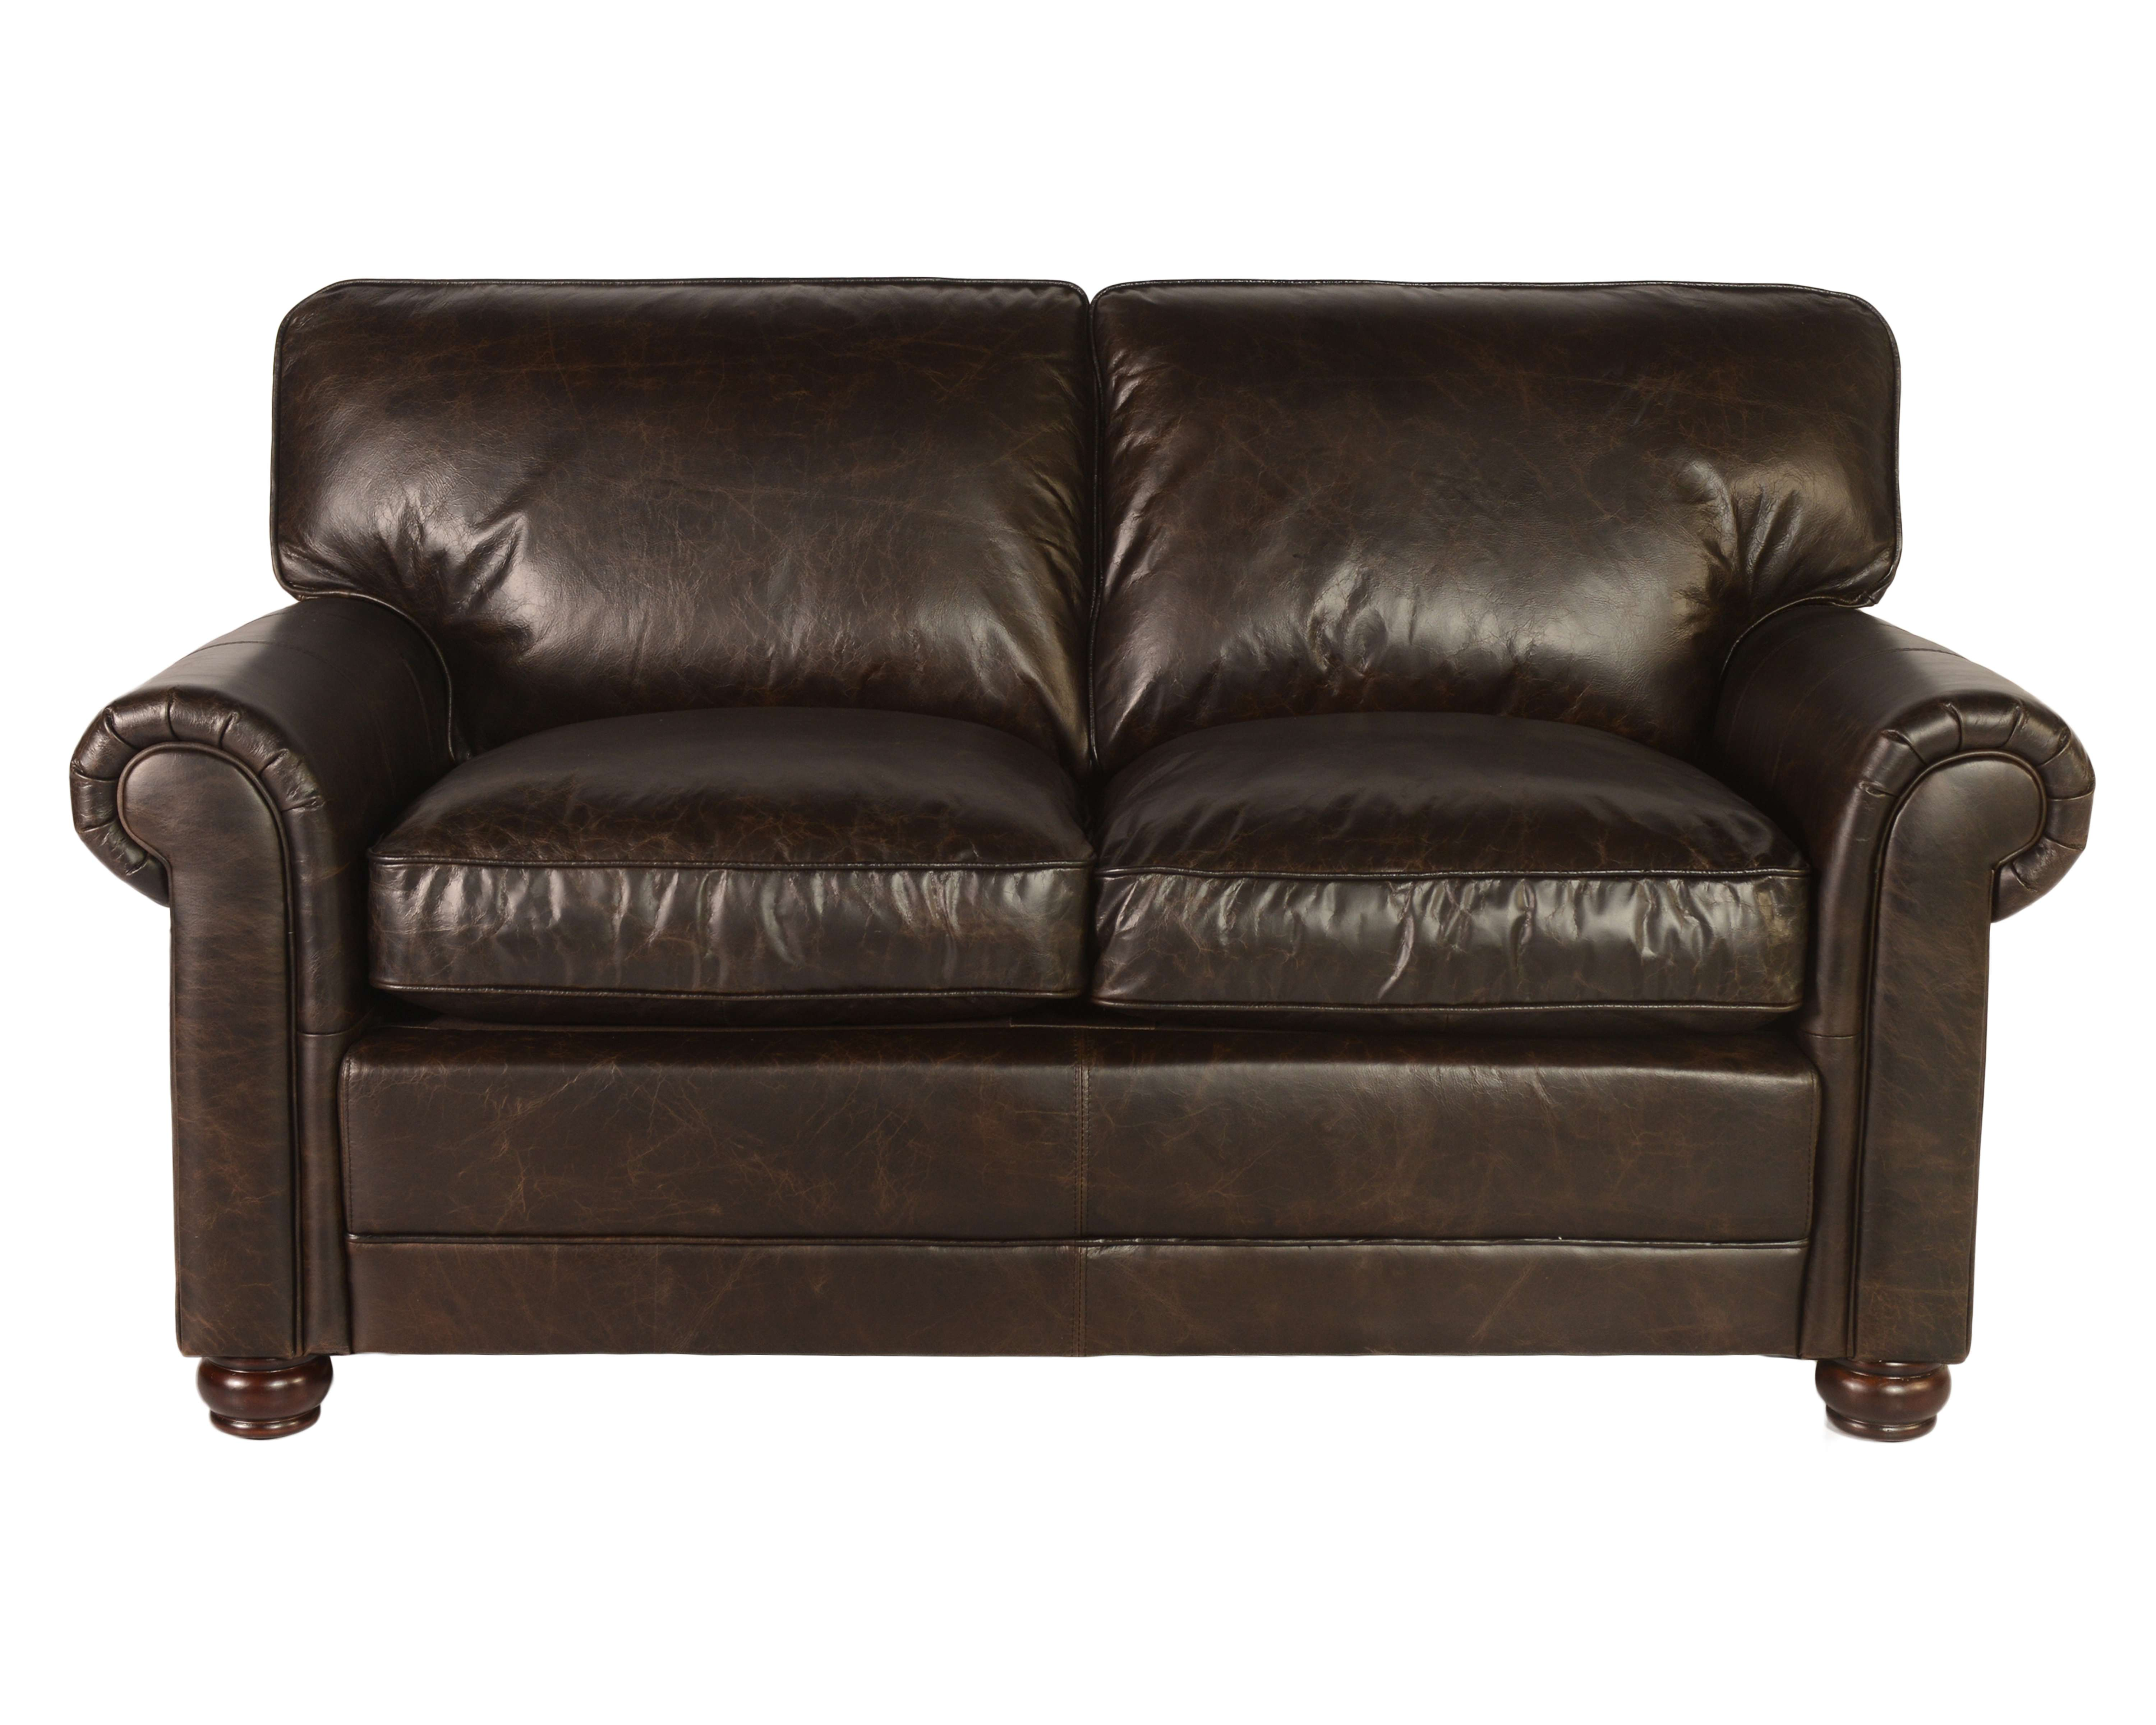 Hardwick Loveseat In Brompton Chocolate